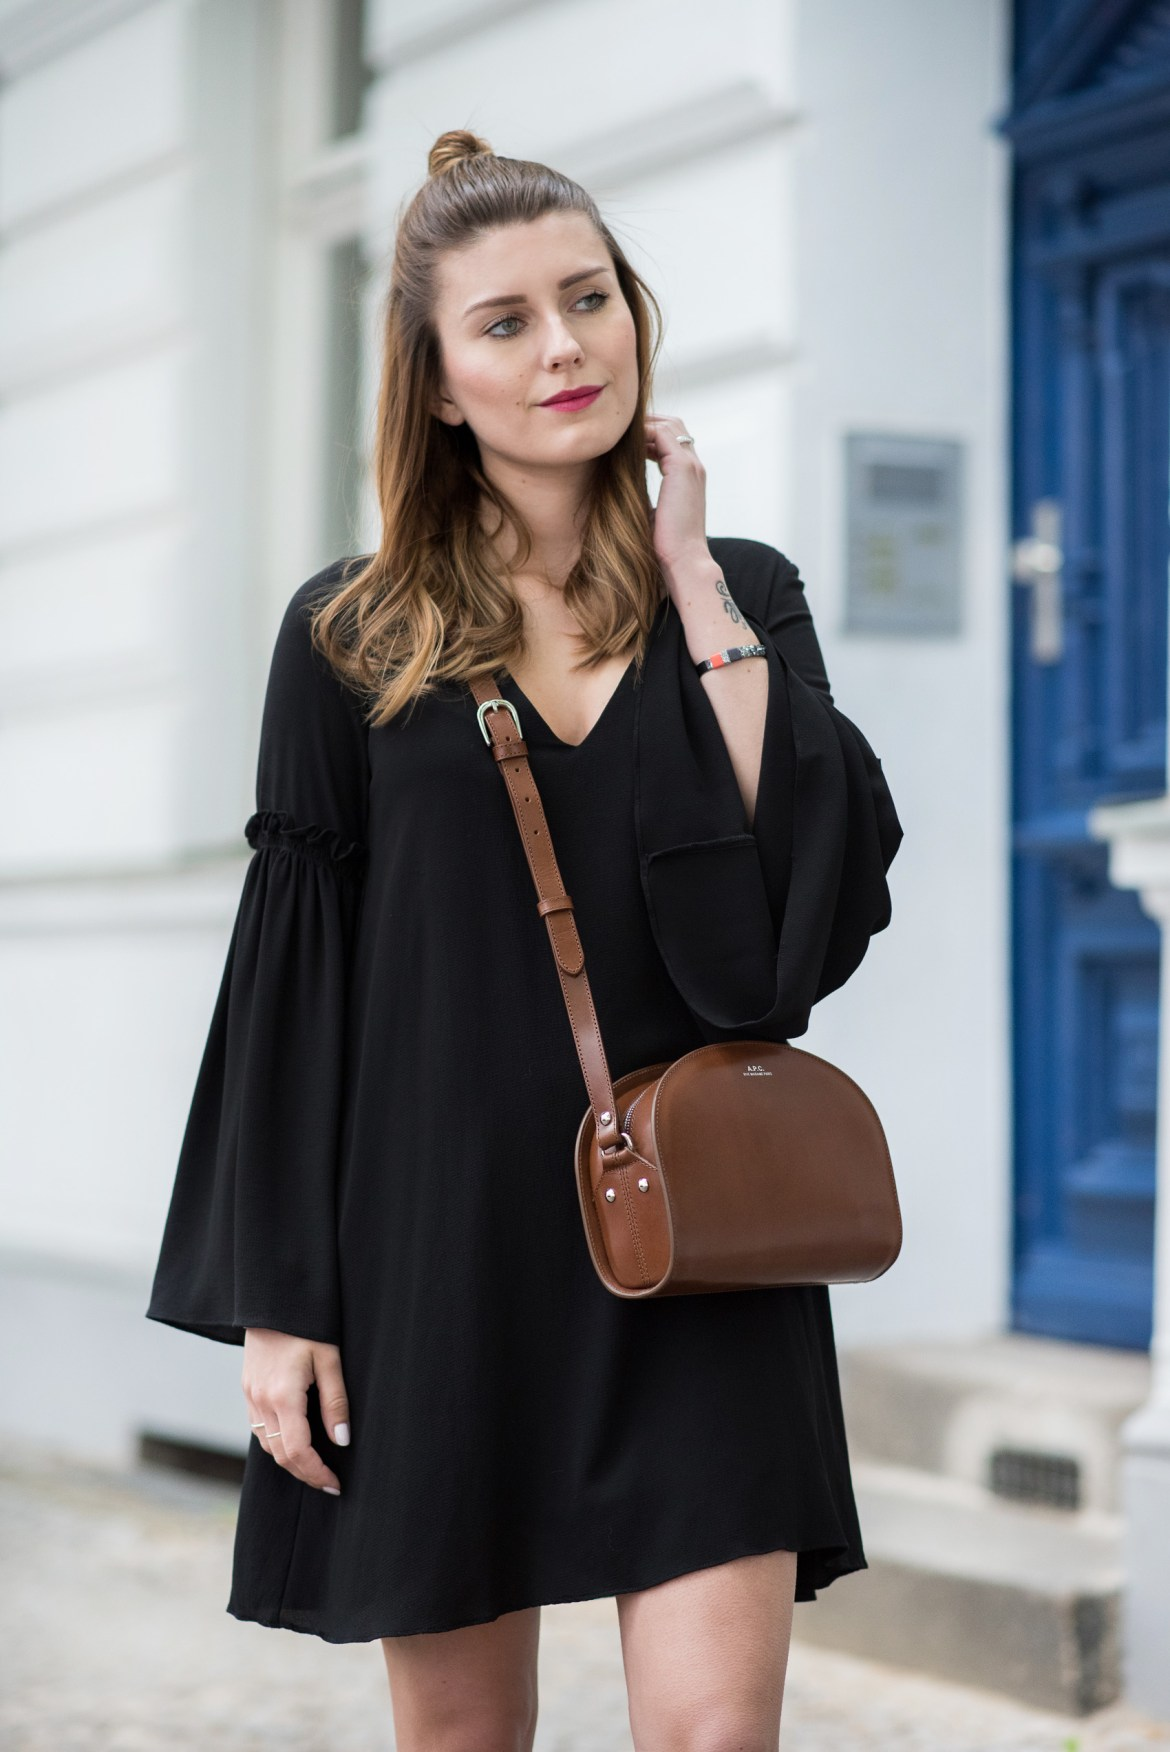 Bell_Sleeves_Boho_Dress_Outfit_6